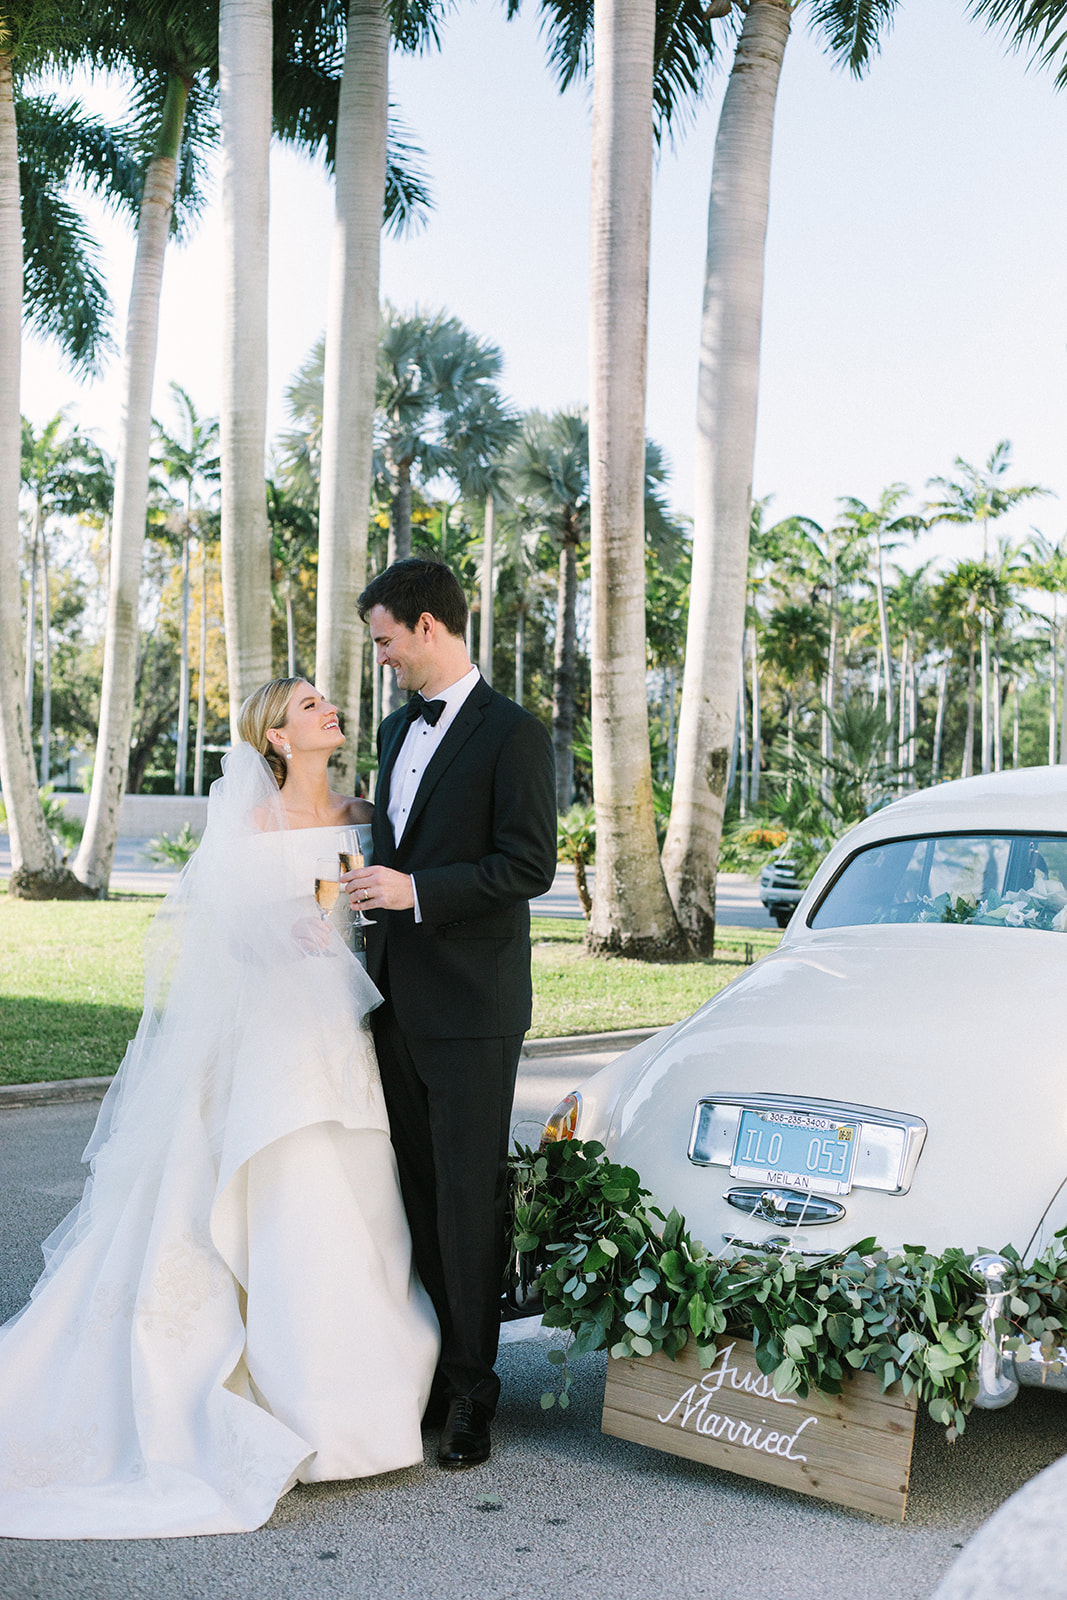 bride and groom smiling standing next to white vintage car